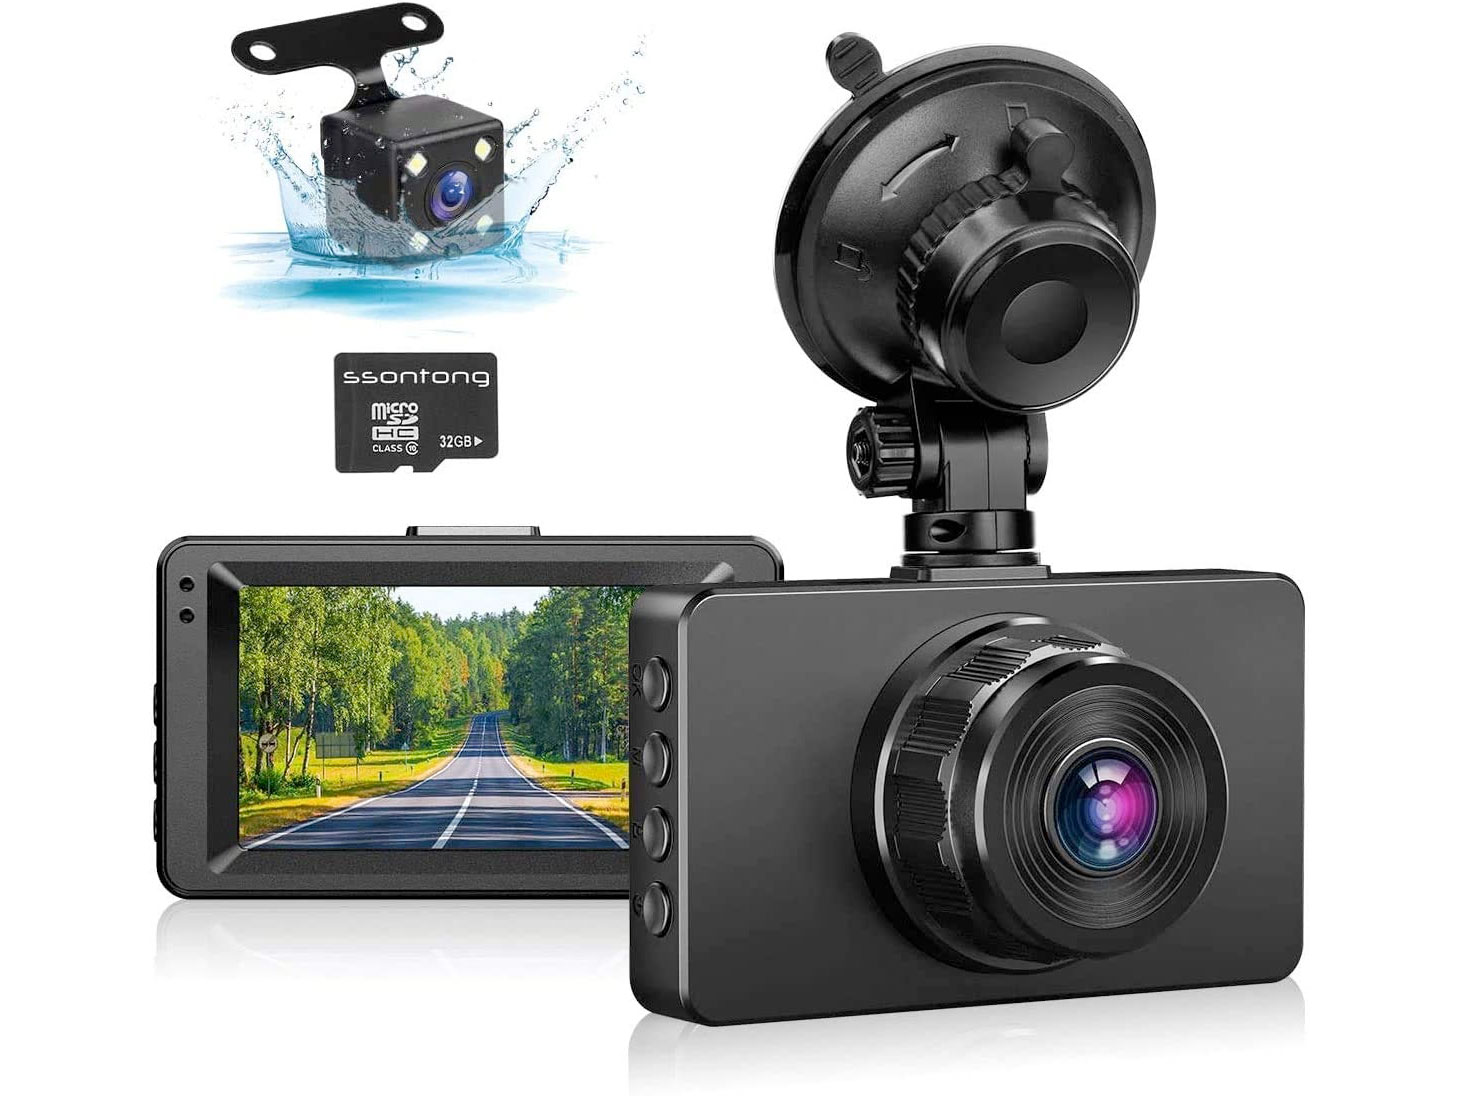 Amazon:Dual Dash Cam Front and Rear前後雙鏡行車記錄儀 (with SD Card)只賣$41.99